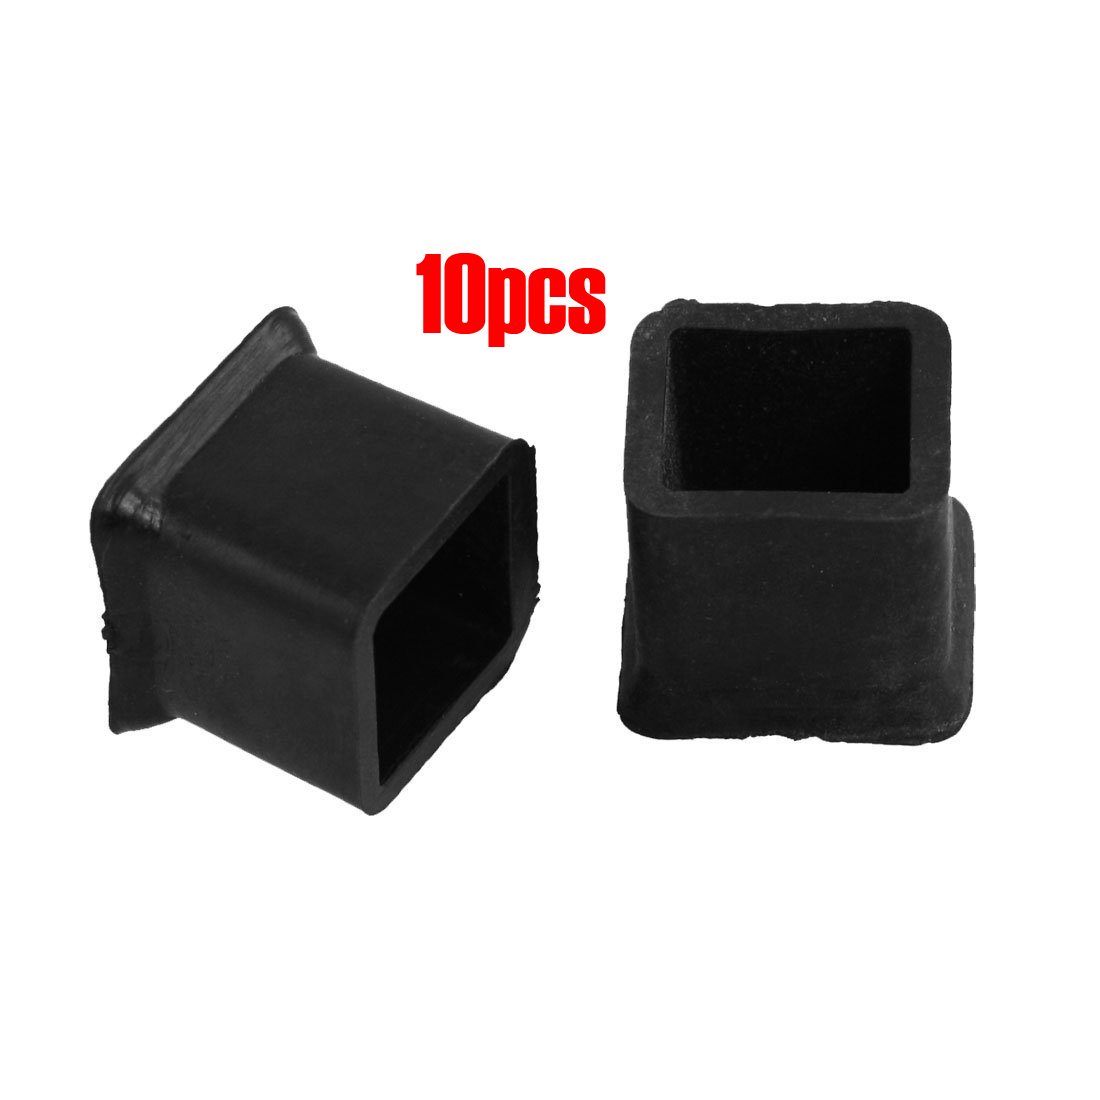 NOCM New 10Pcs Furniture Chair Table Leg Rubber Foot Covers Protectors 20mm x 20mm Free Shipping szs hot new 10pcs furniture chair table leg rubber foot covers protectors 20mm x 20mm free shipping